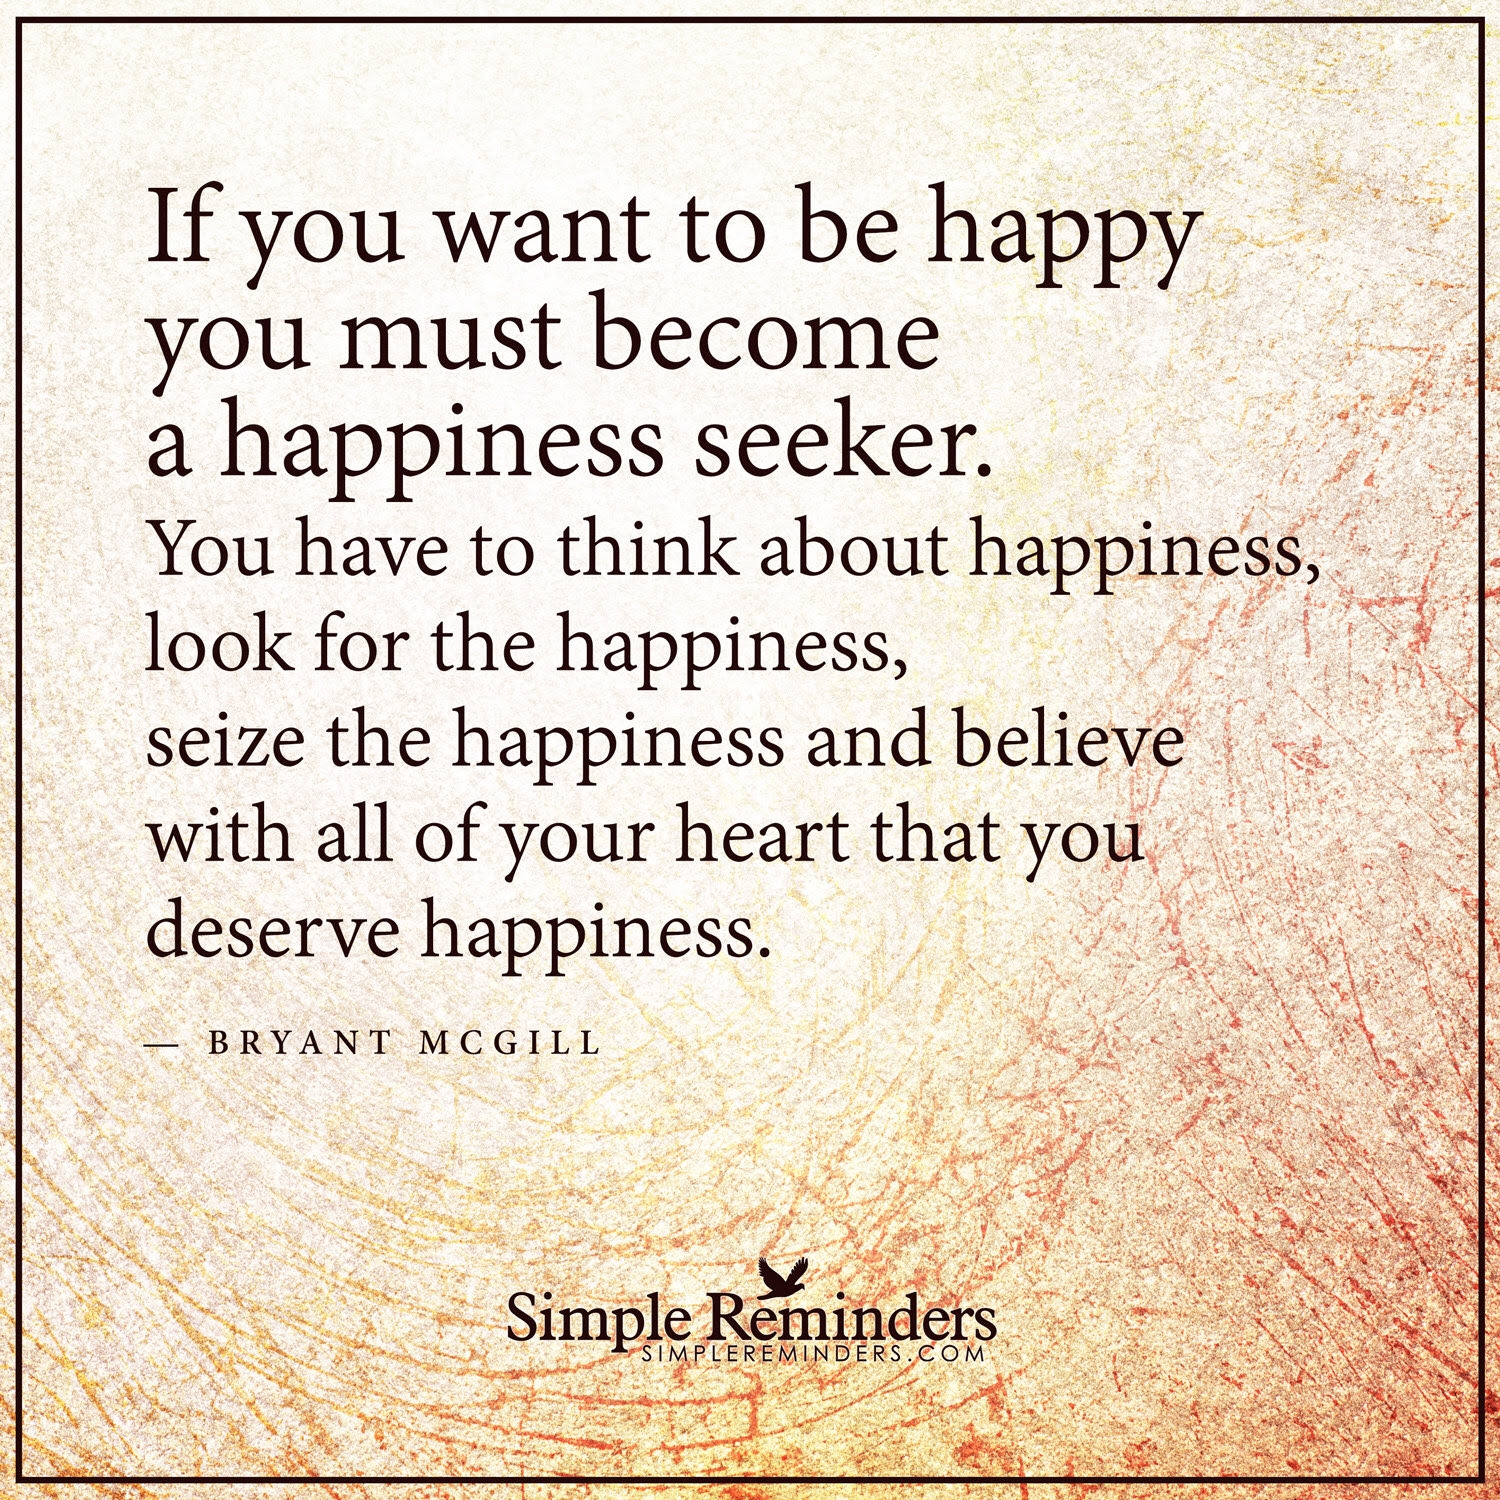 I Deserve Happiness Sanity Pinterest Quotes Bryant Mcgill And